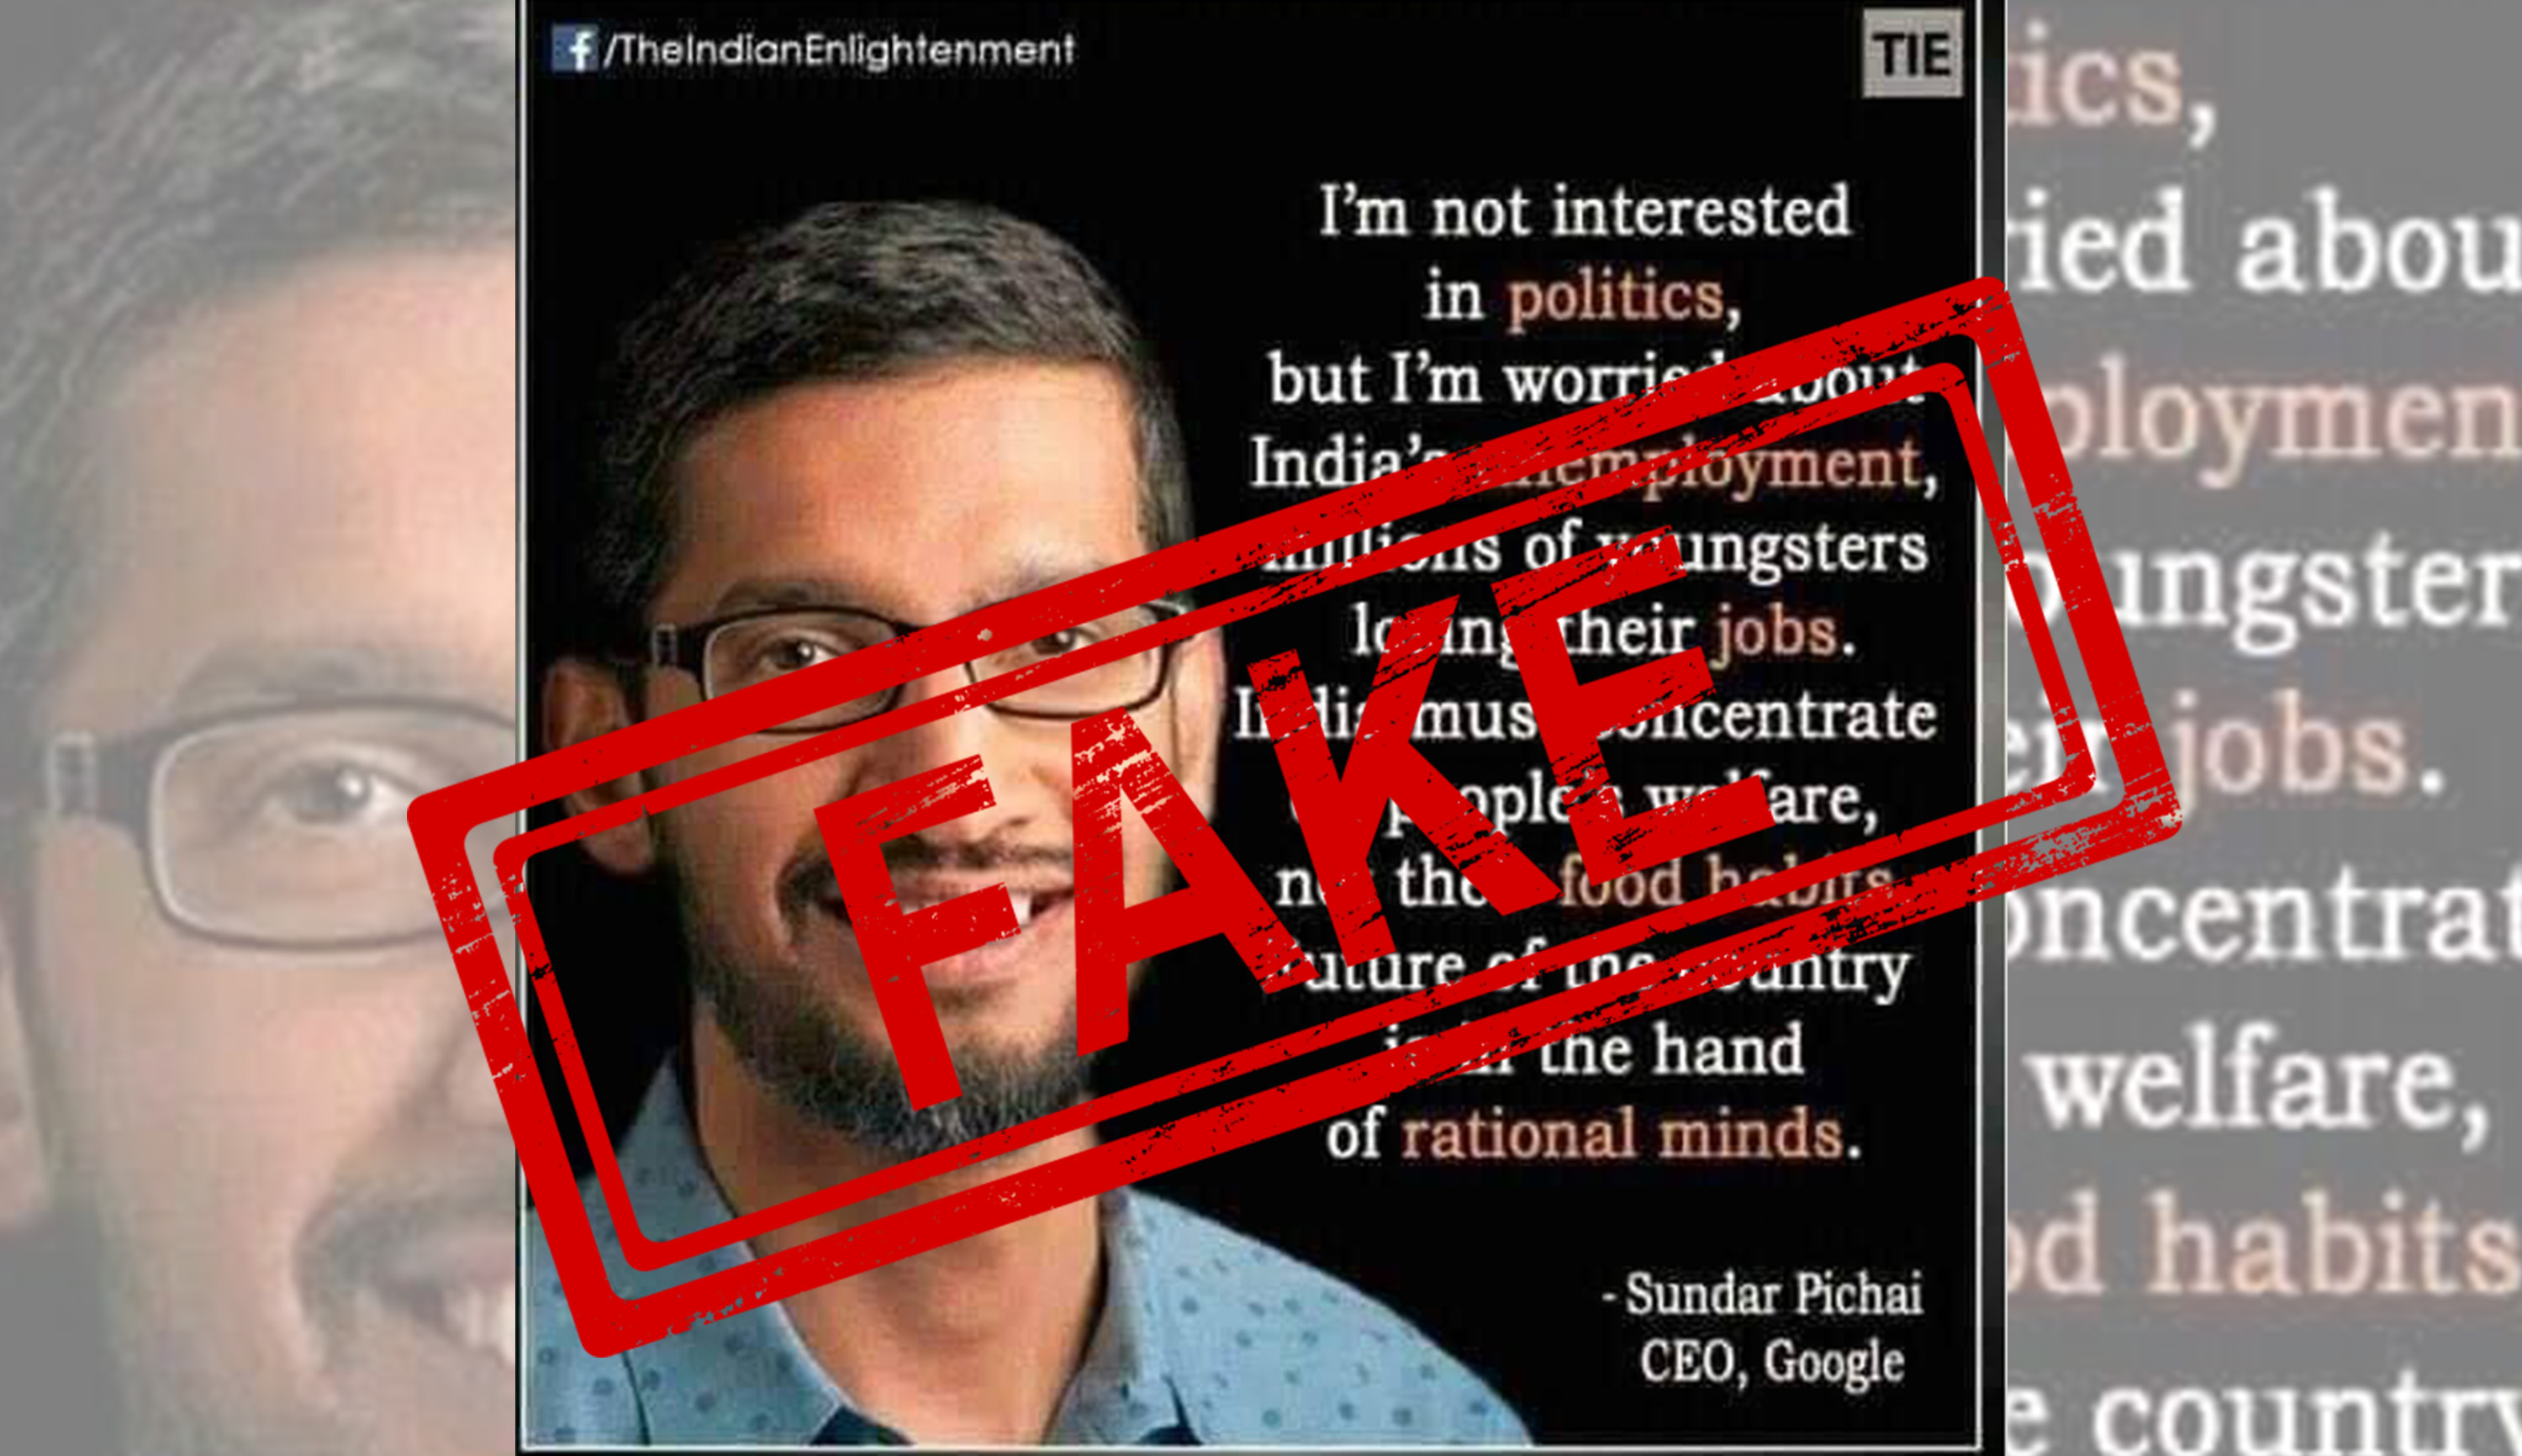 Google, CEO, Sundar Pichai, Viral, Quote, NewsMobile, Mobile News, India, Fact Check, Fact Checker, FAKE